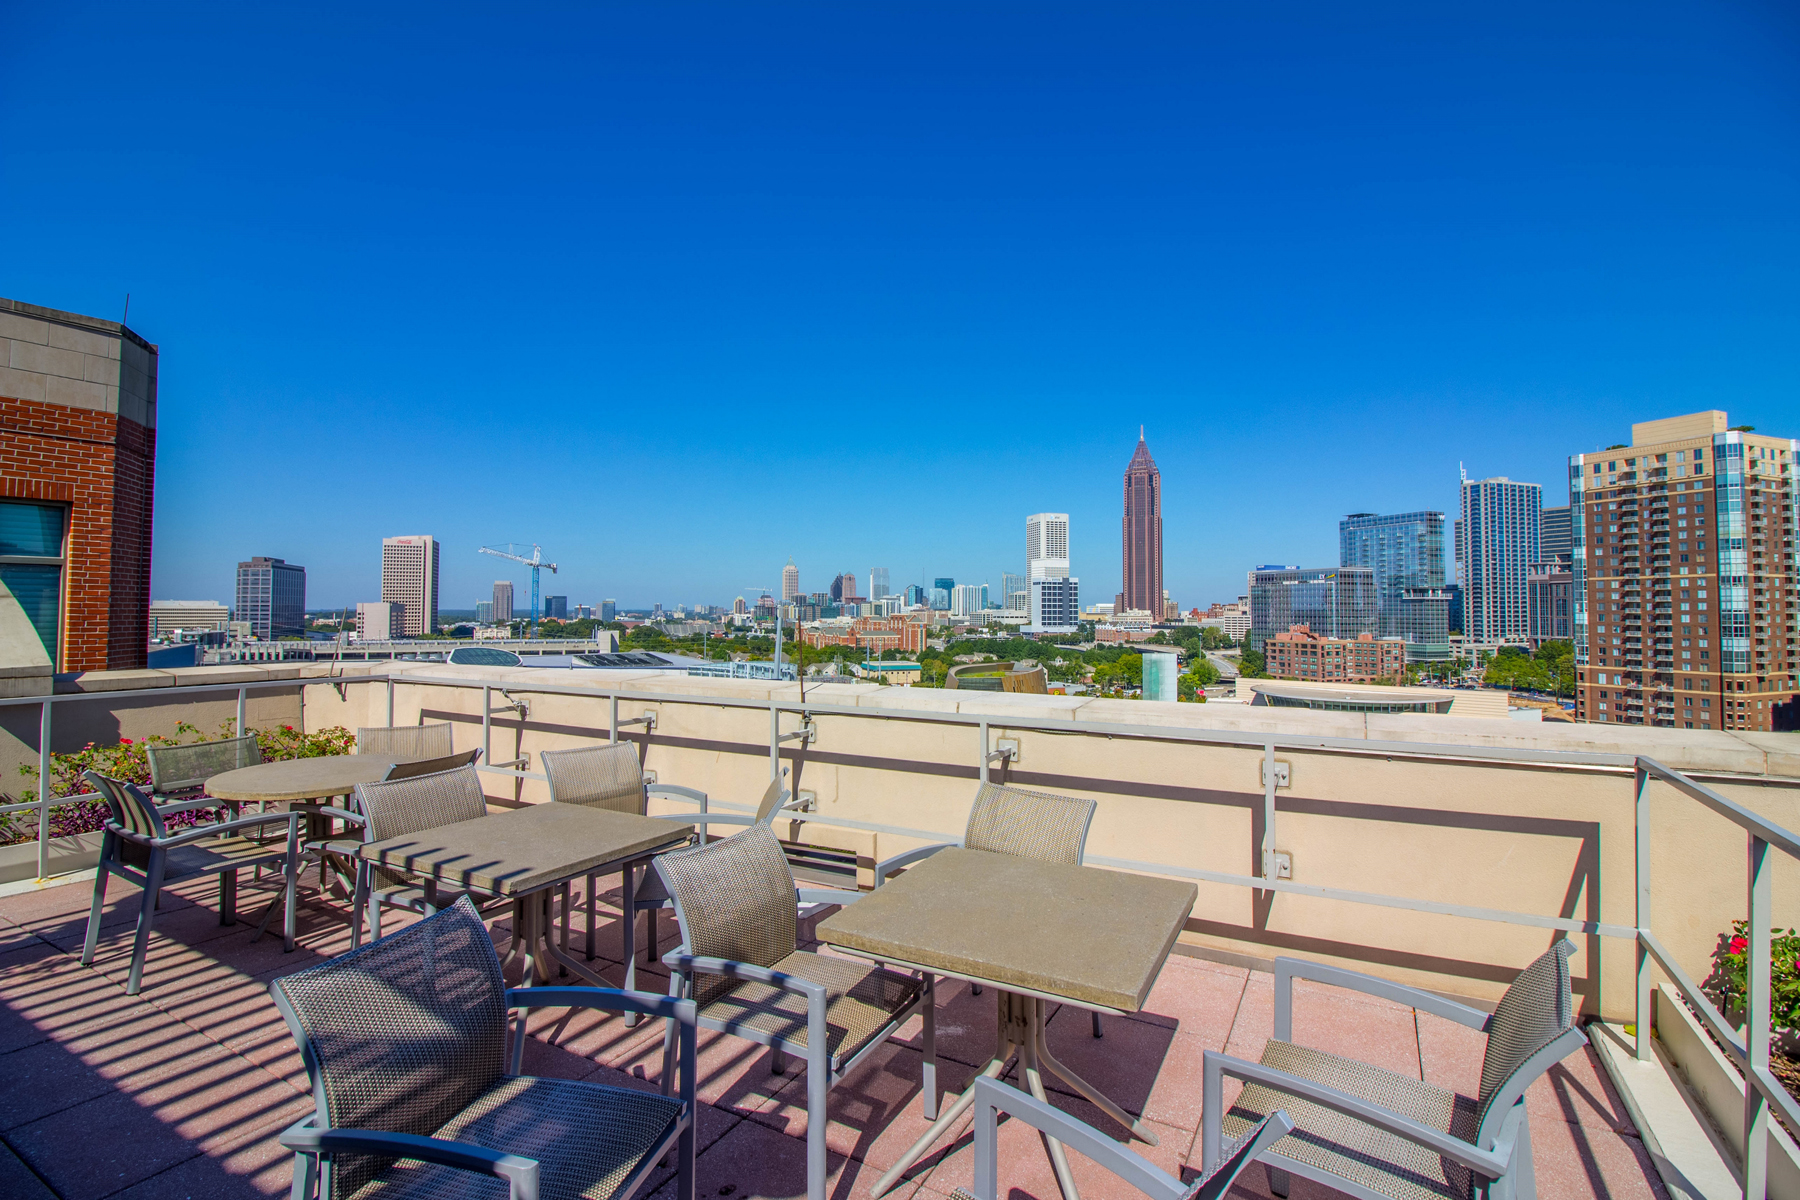 Additional photo for property listing at An Inviting Upscale Condominium Residence in the Heart of Downtown Atlanta 250 Park Avenue West NW Unit 404 Atlanta, Georgia 30313 Stati Uniti